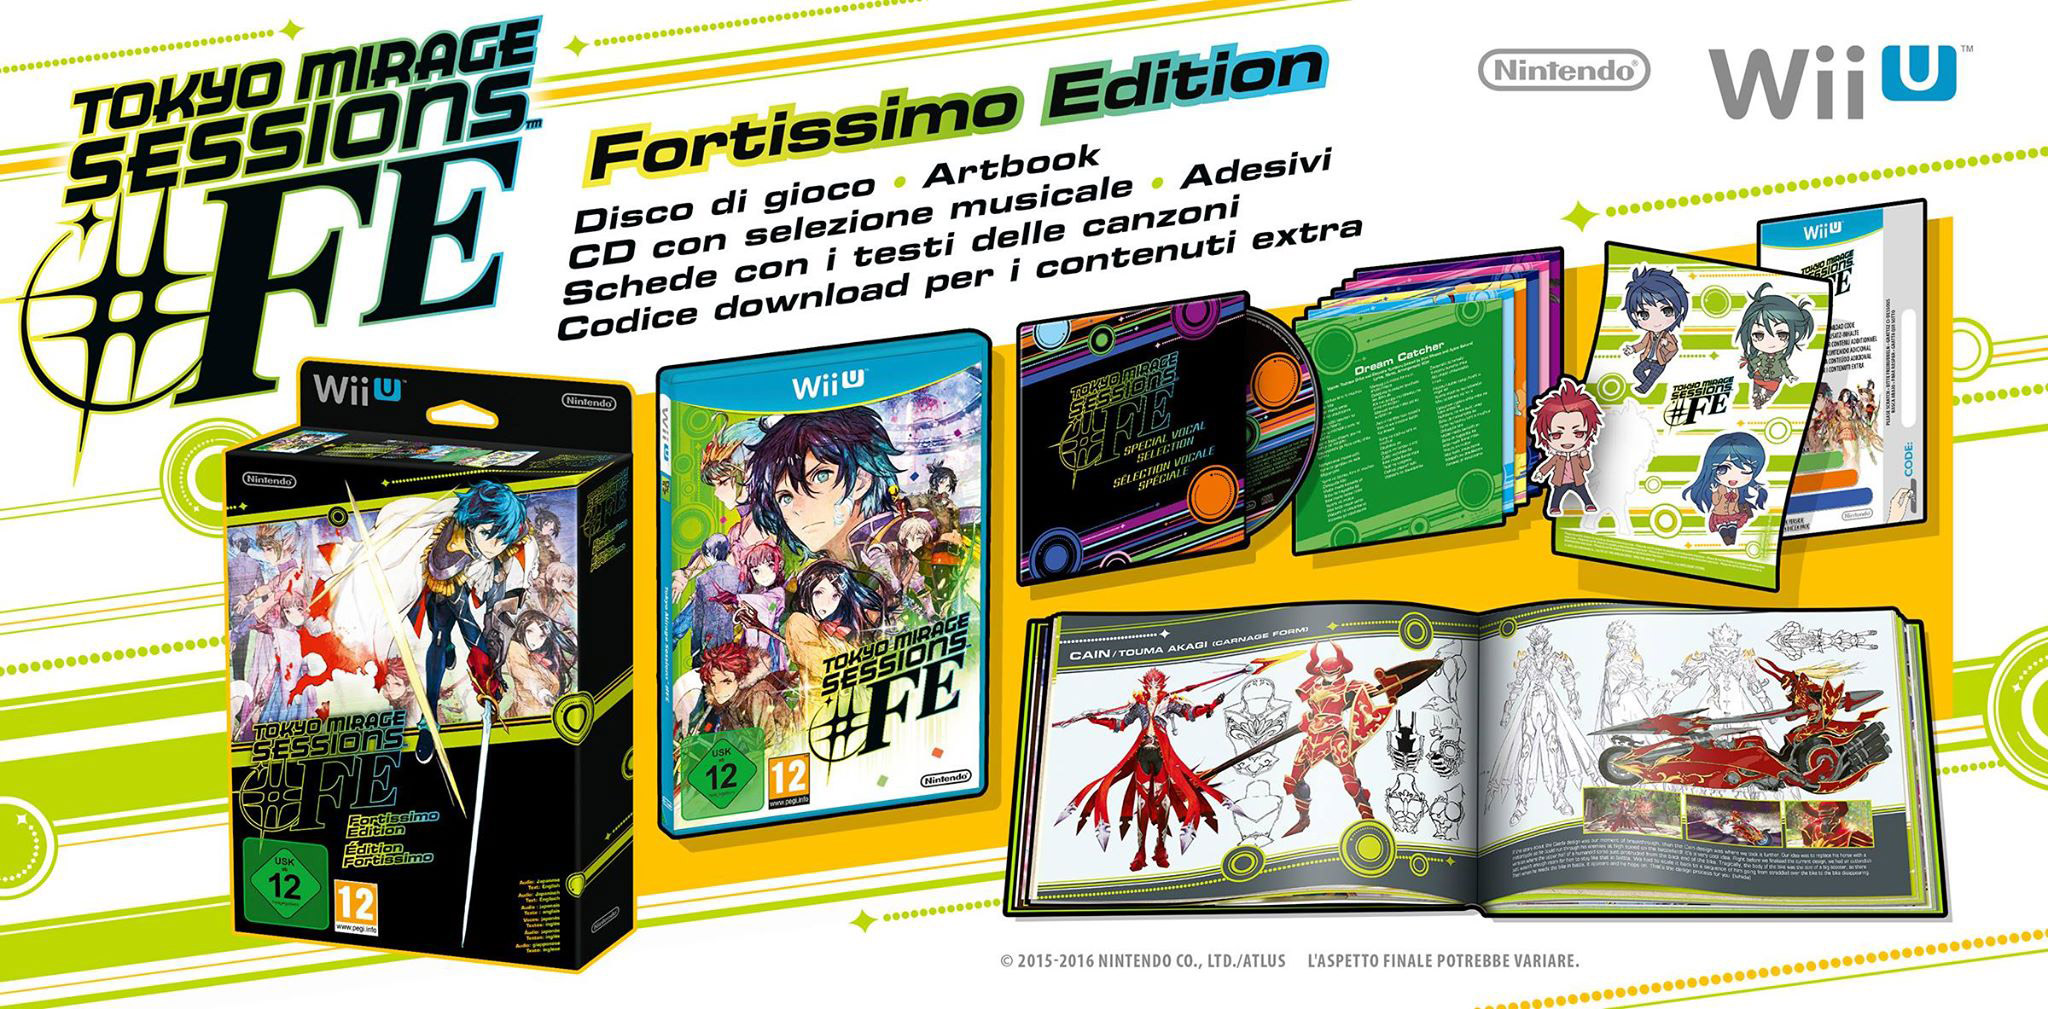 tokyo-mirage-sessions-fe-fortissimo-edition